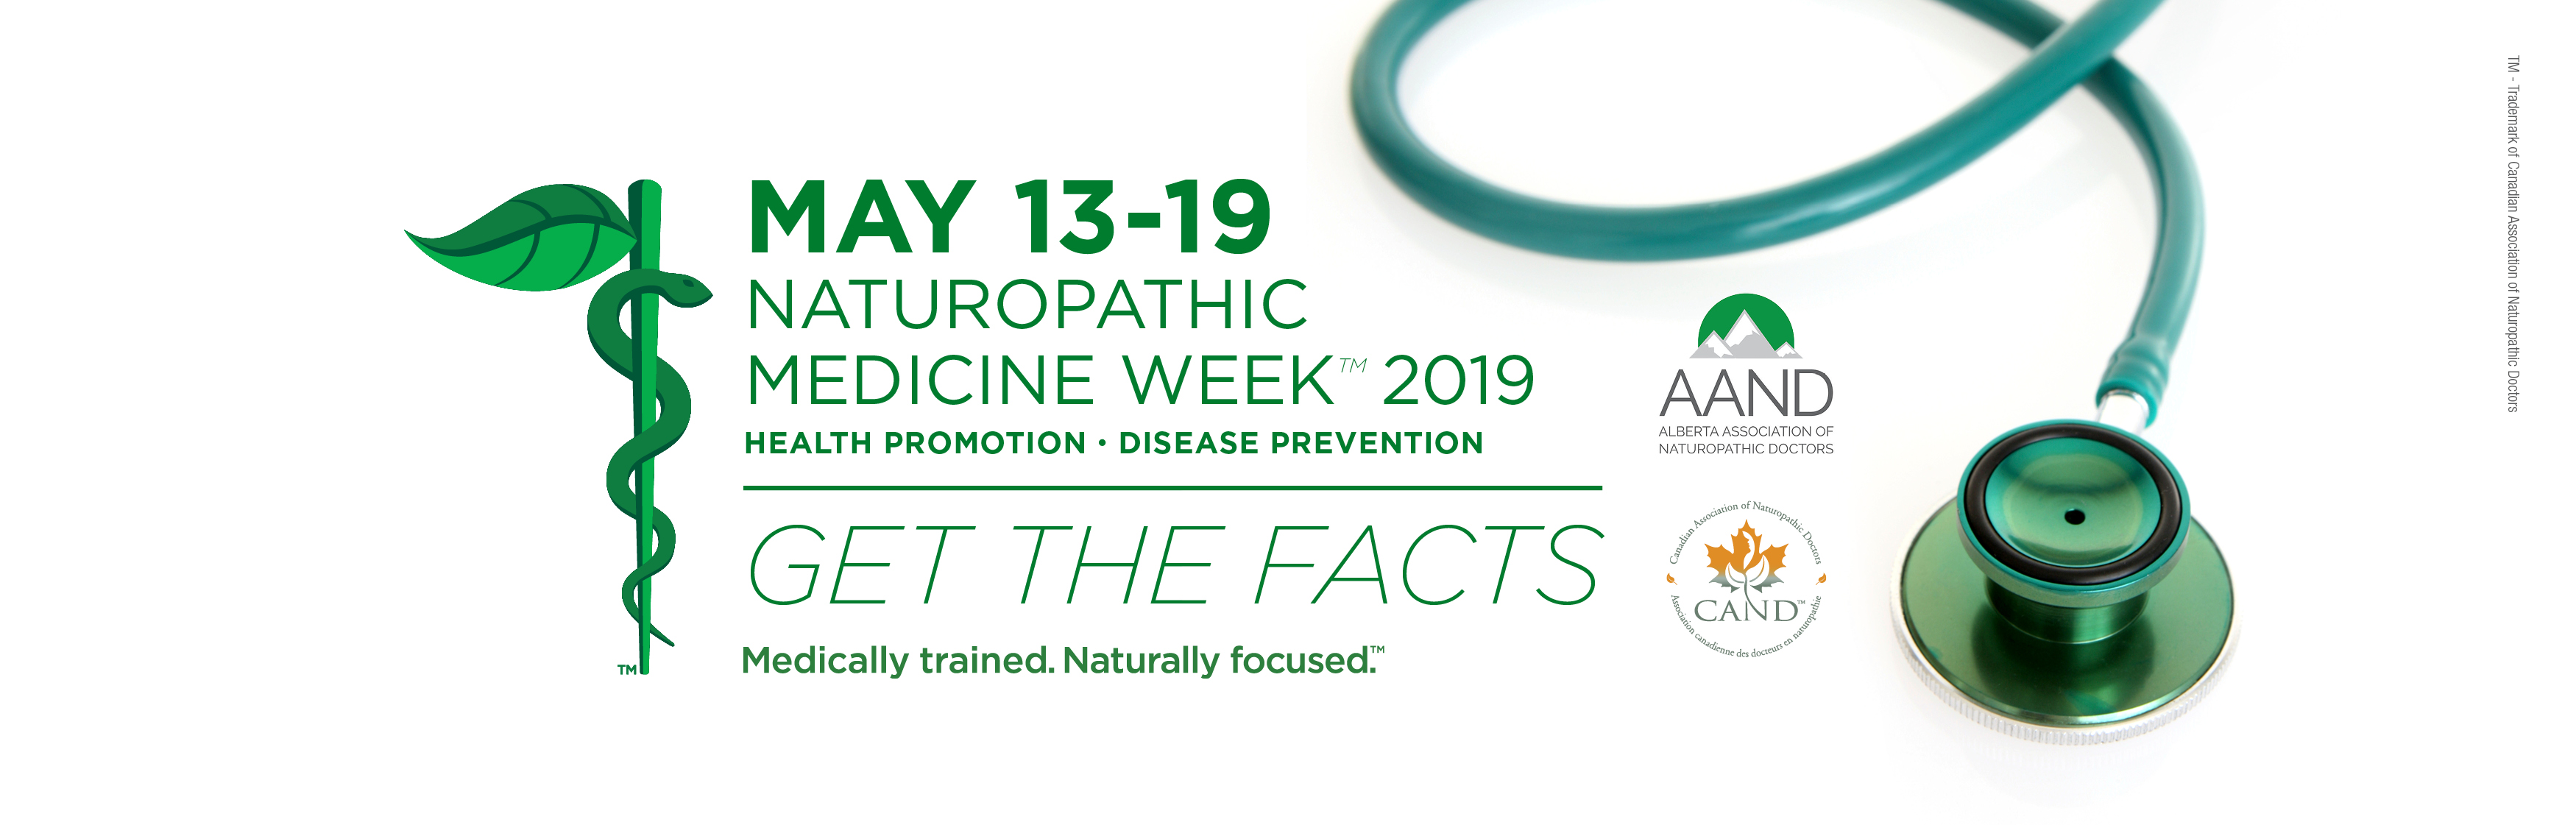 Alberta Association of Naturopathic Doctors | Working For